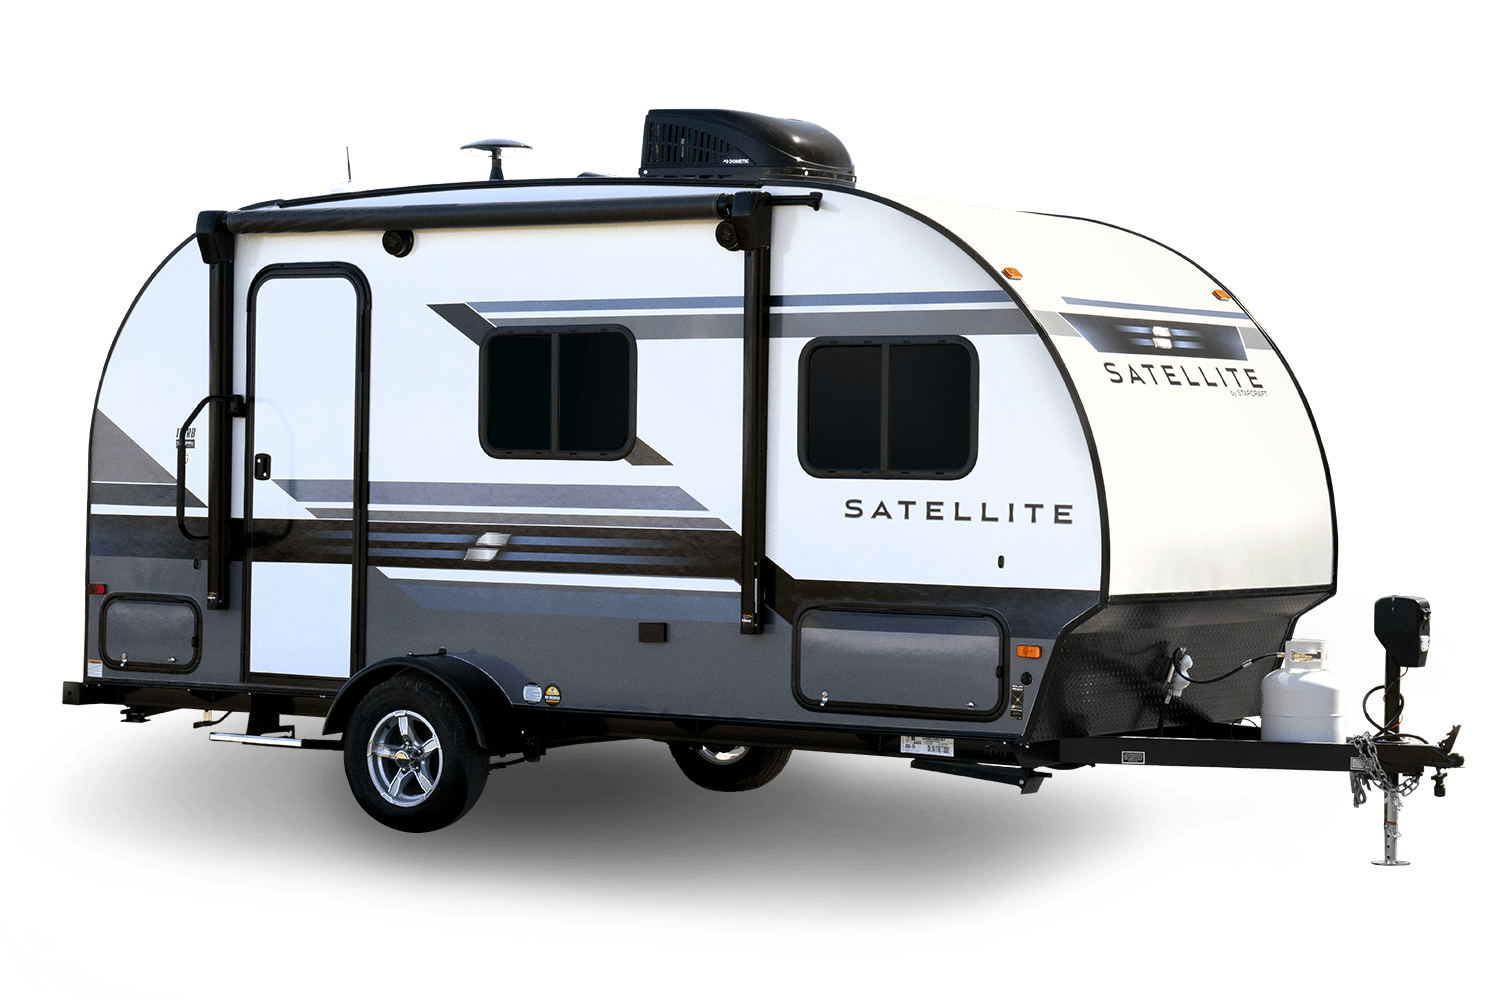 Tow Light: 20 Impressively Small Travel Trailers & Campers